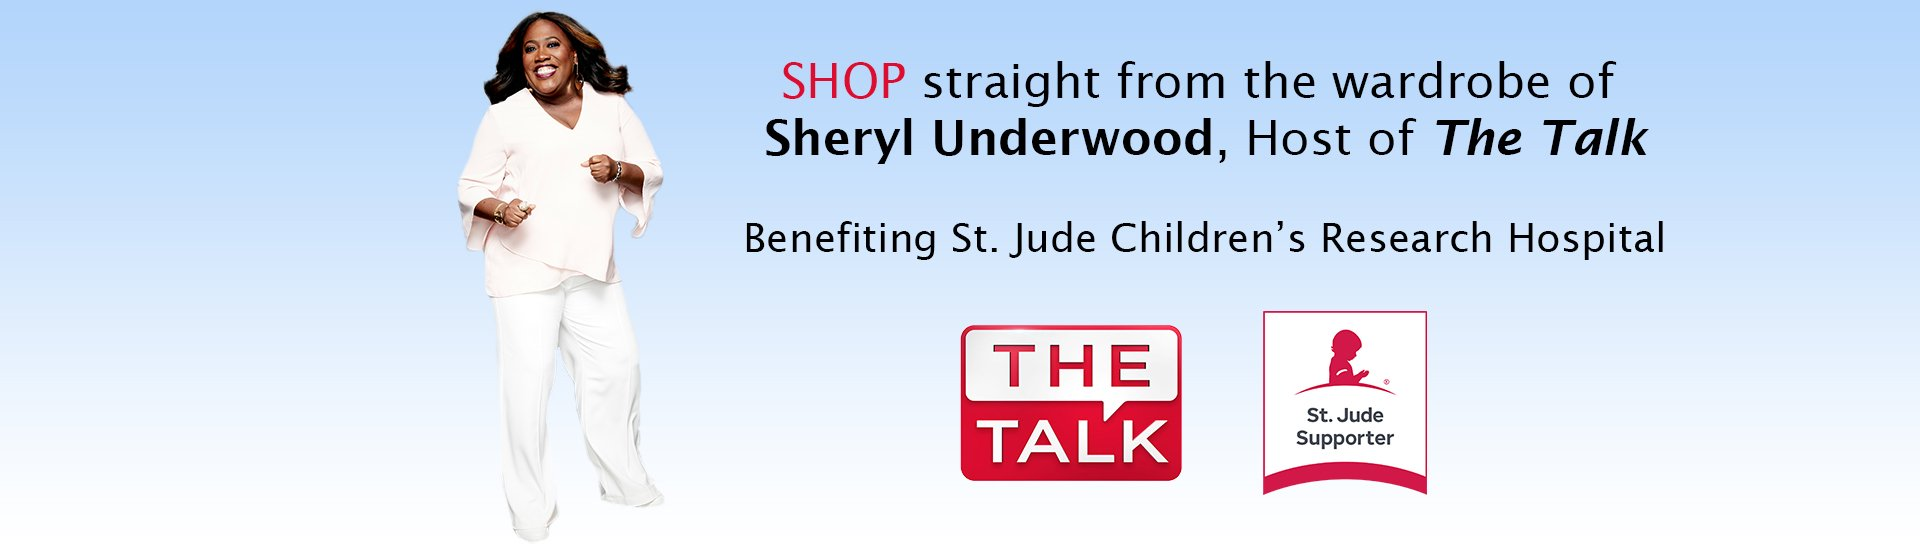 Sheryl Underwood The Talk Collection for St. Jude